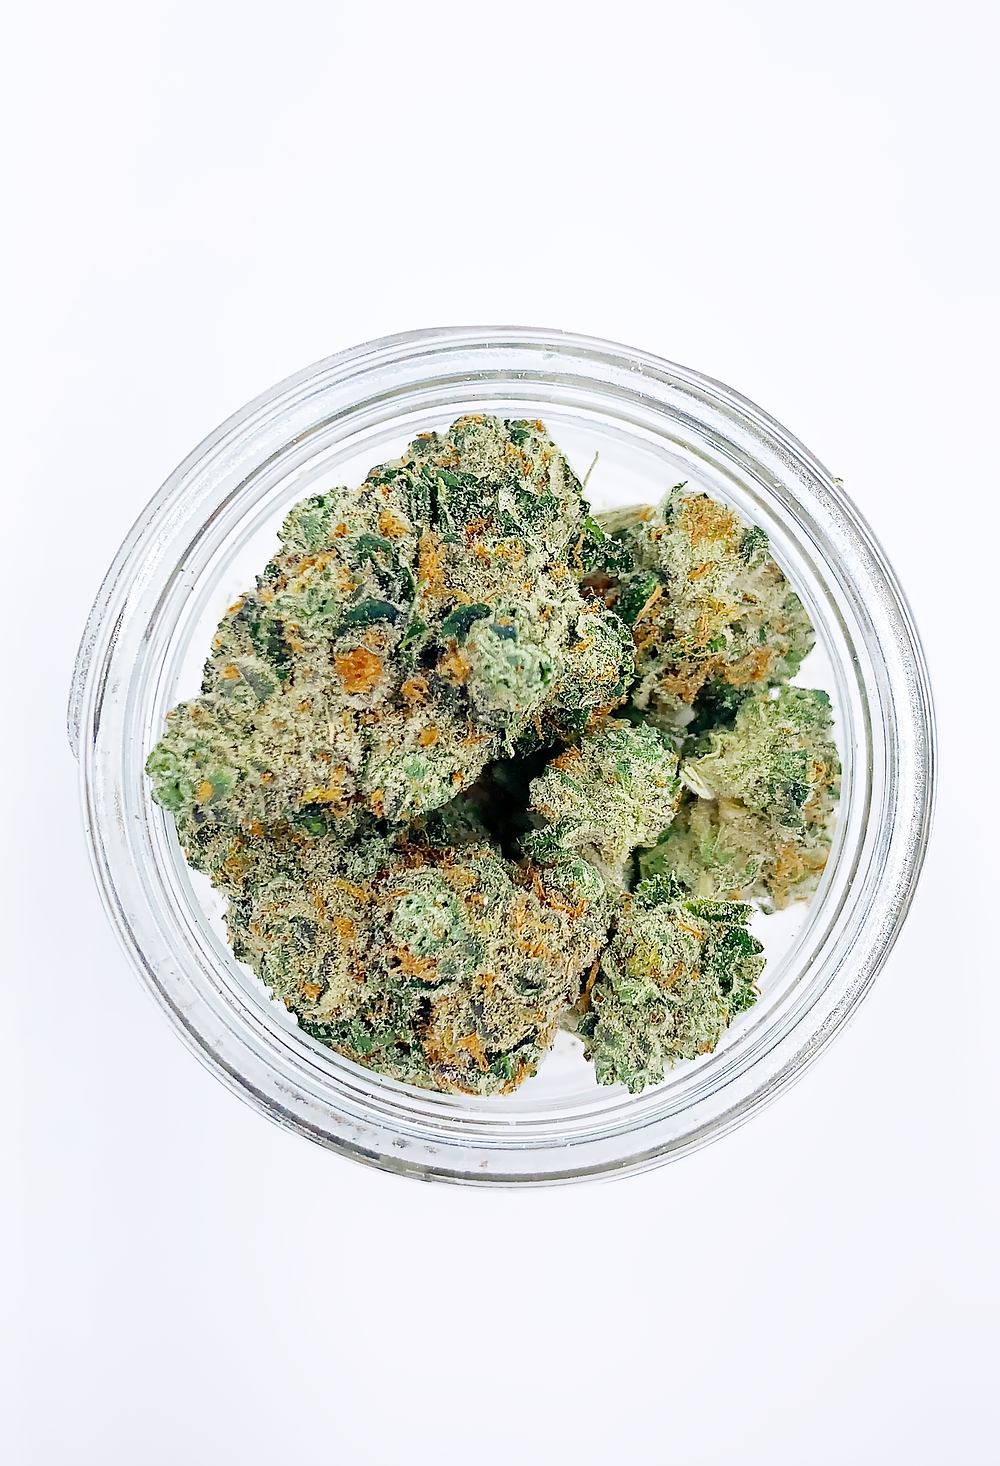 Ice Cream Man #3 strain review by The Epic Remedy